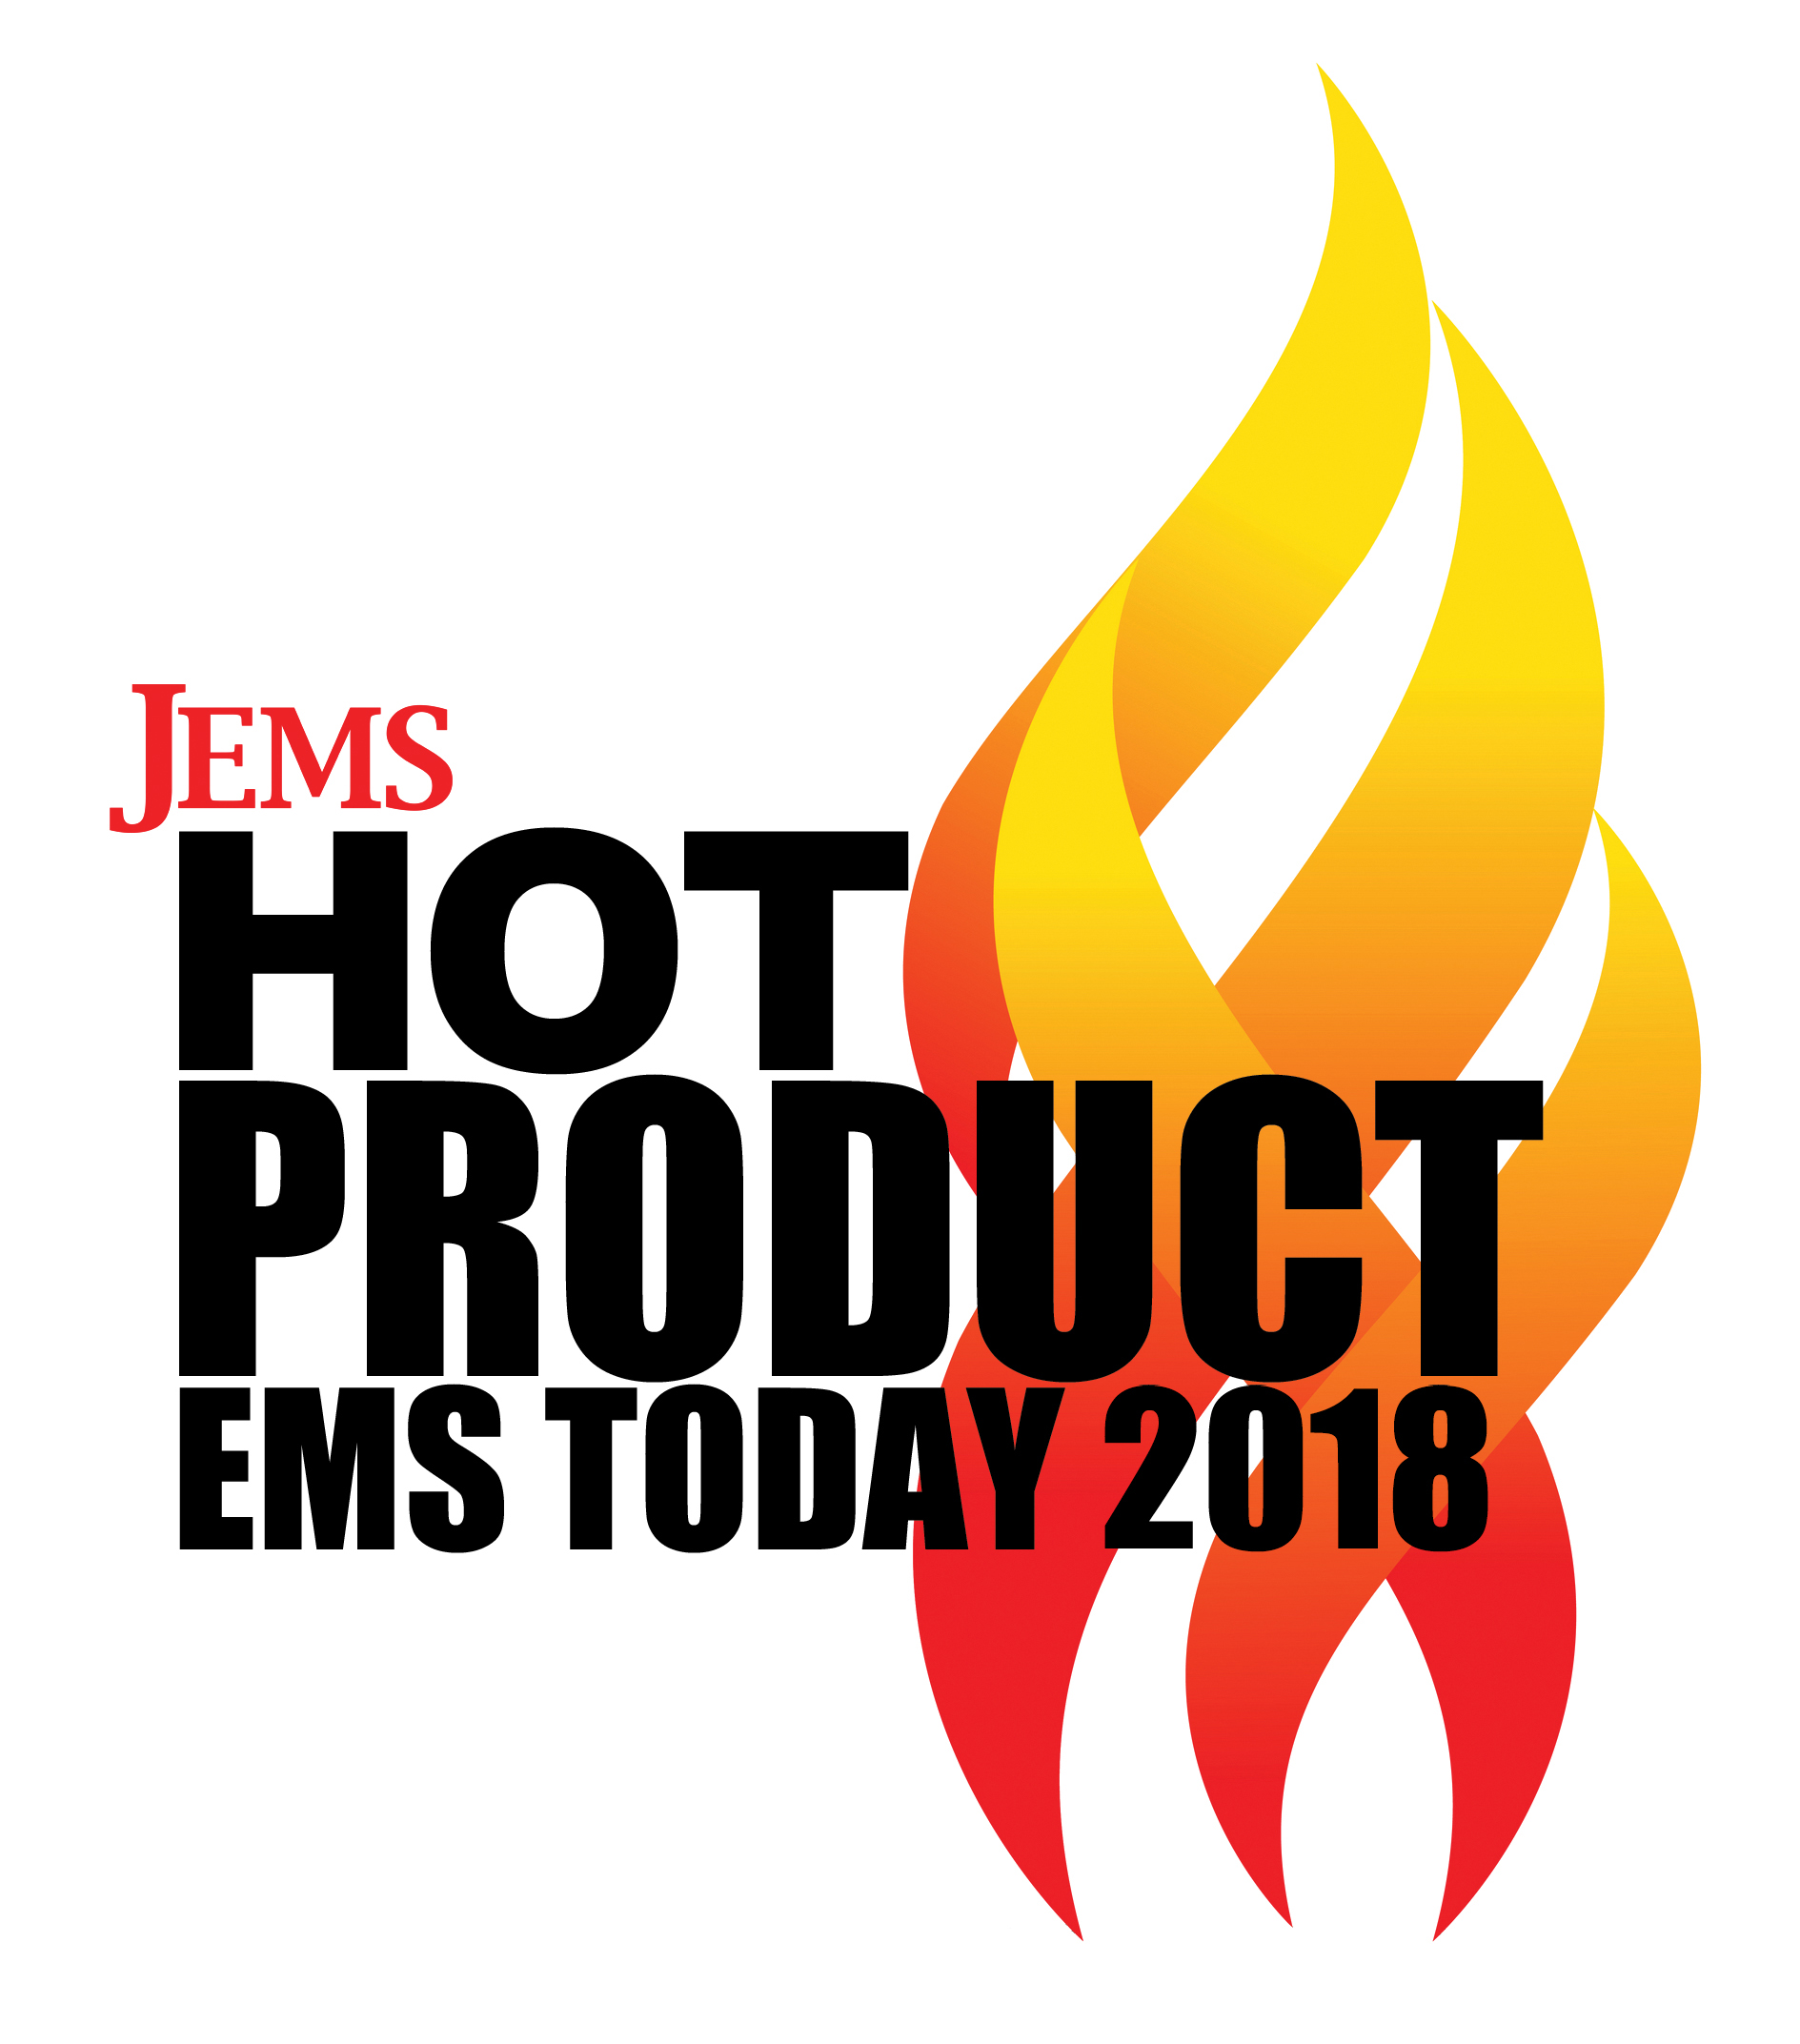 jems-hot-product-ems-today-2018.jpg